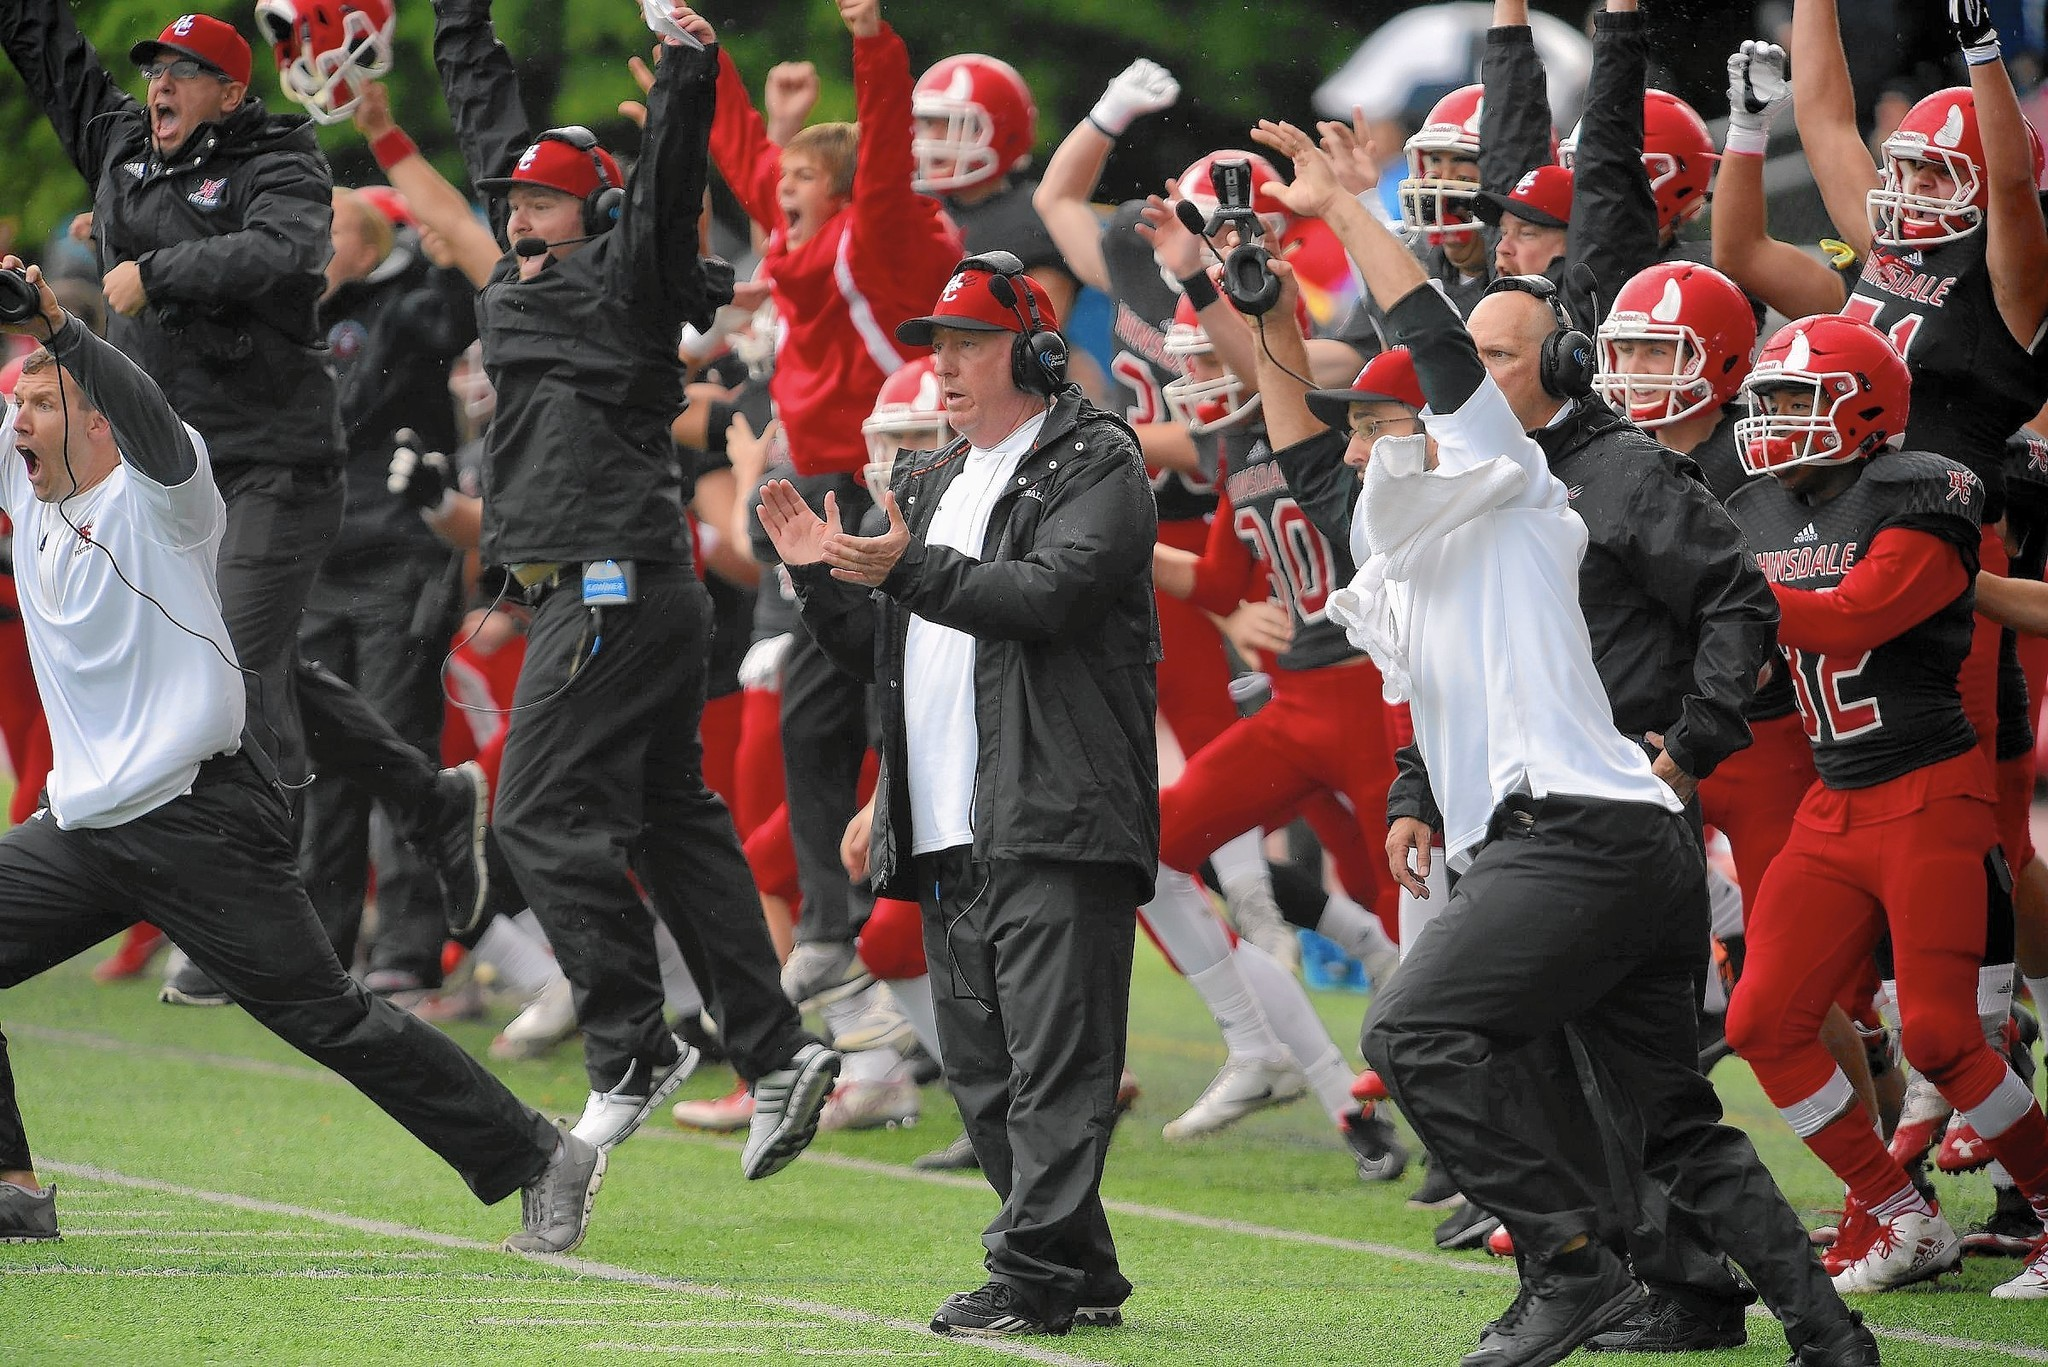 Hinsdale Central Rallies To Edge Glenbard West In Overtime Thriller